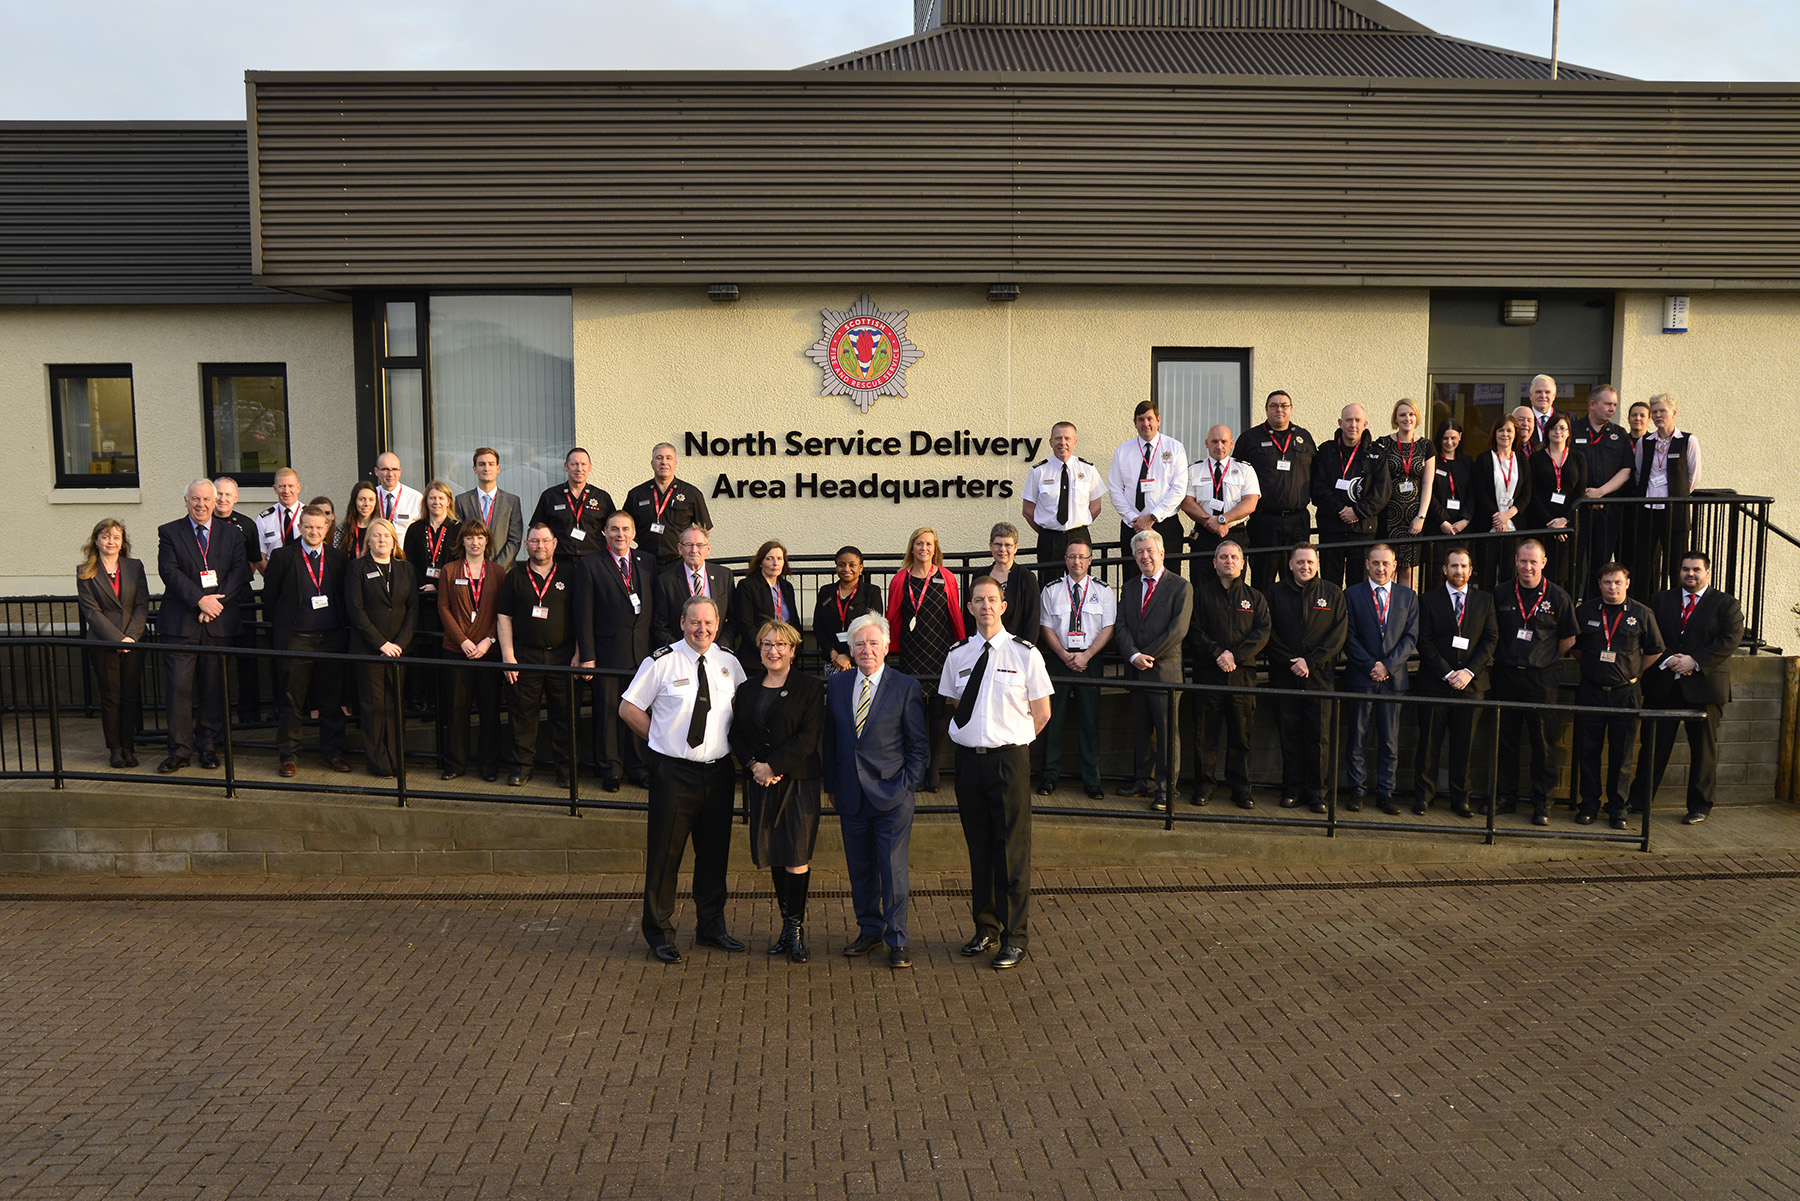 The Scottish Fire and Rescue Service unveils £1m investment with opening of north headquarters at Dyce